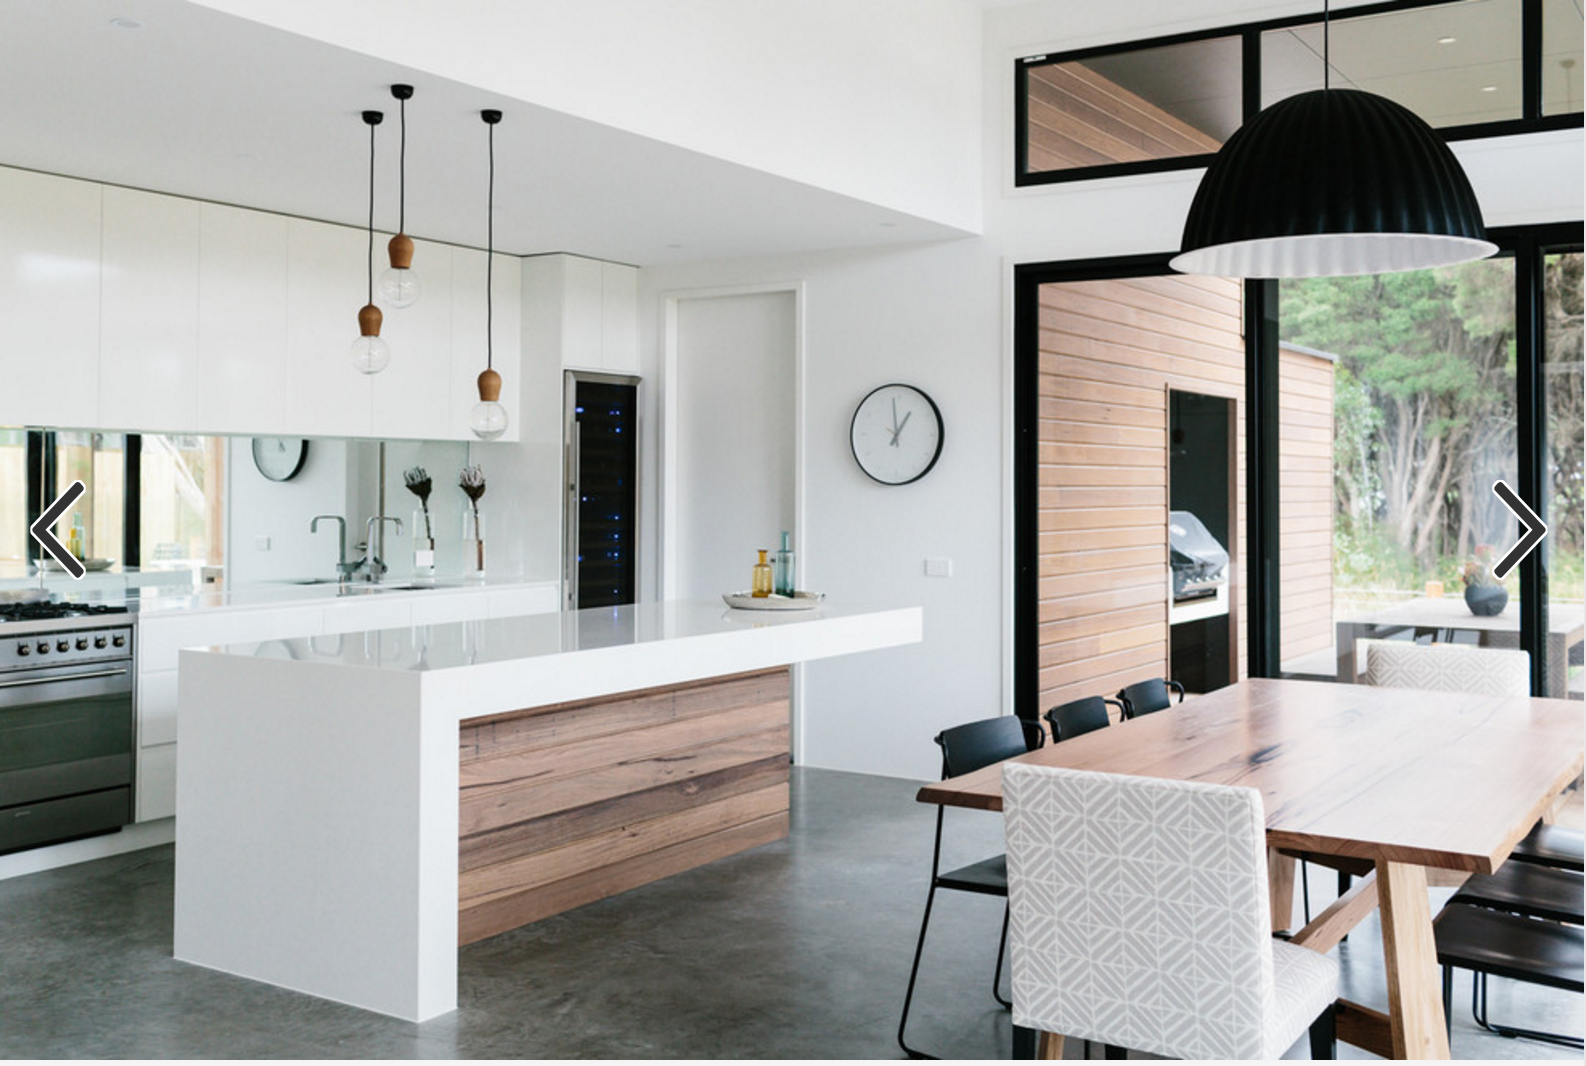 Cuttingedge contemporary style black white and wood is a winning